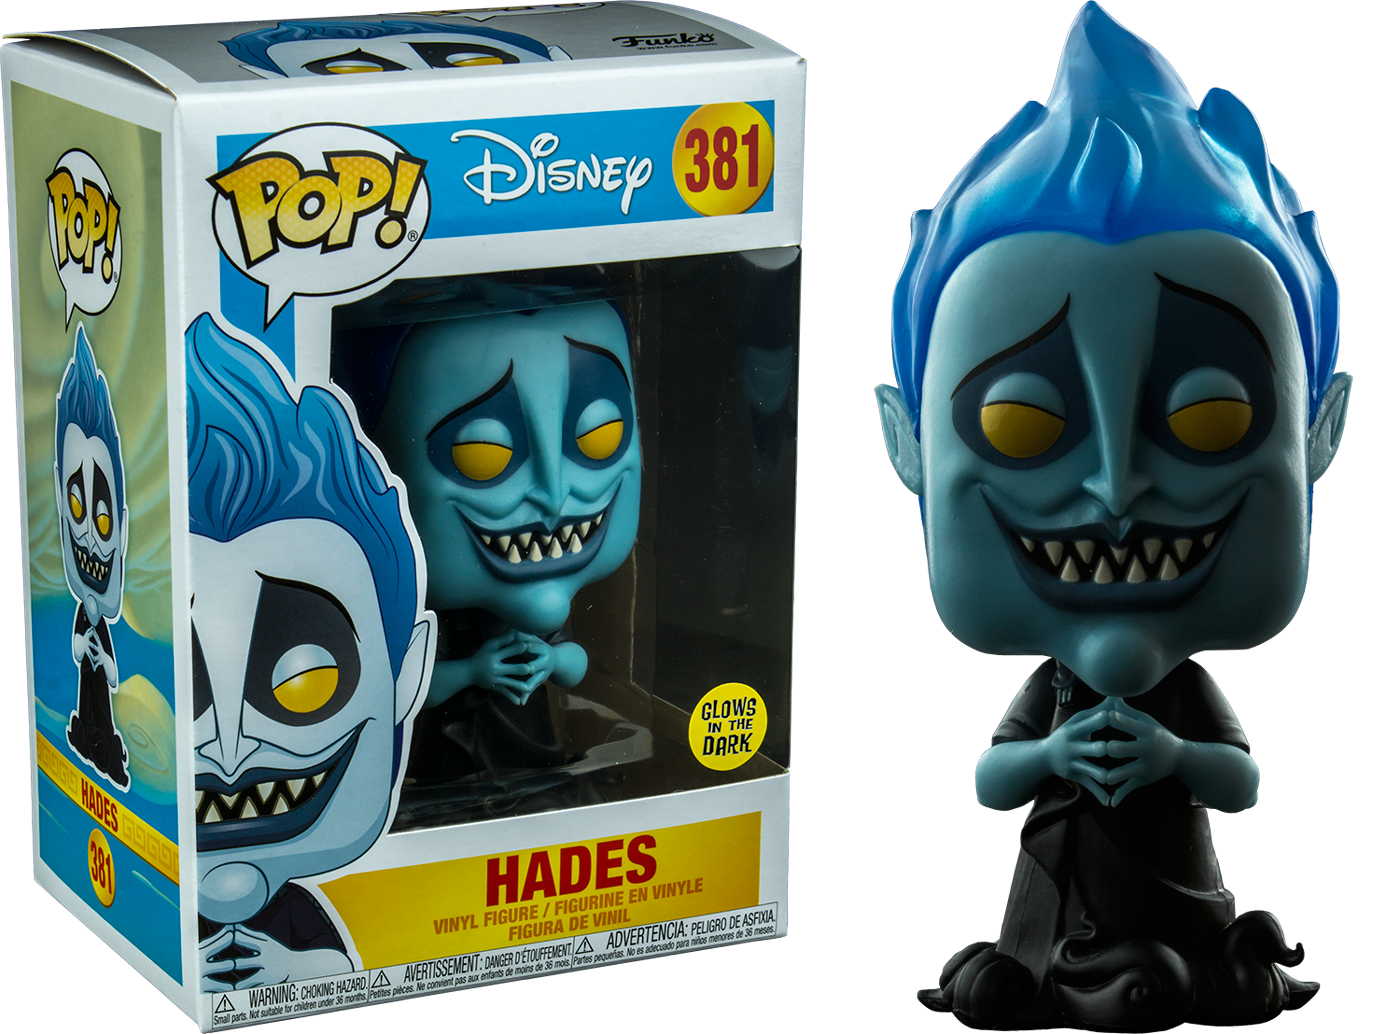 Hercules - Hades Glow in the Dark Pop! Vinyl Figure (NFR)